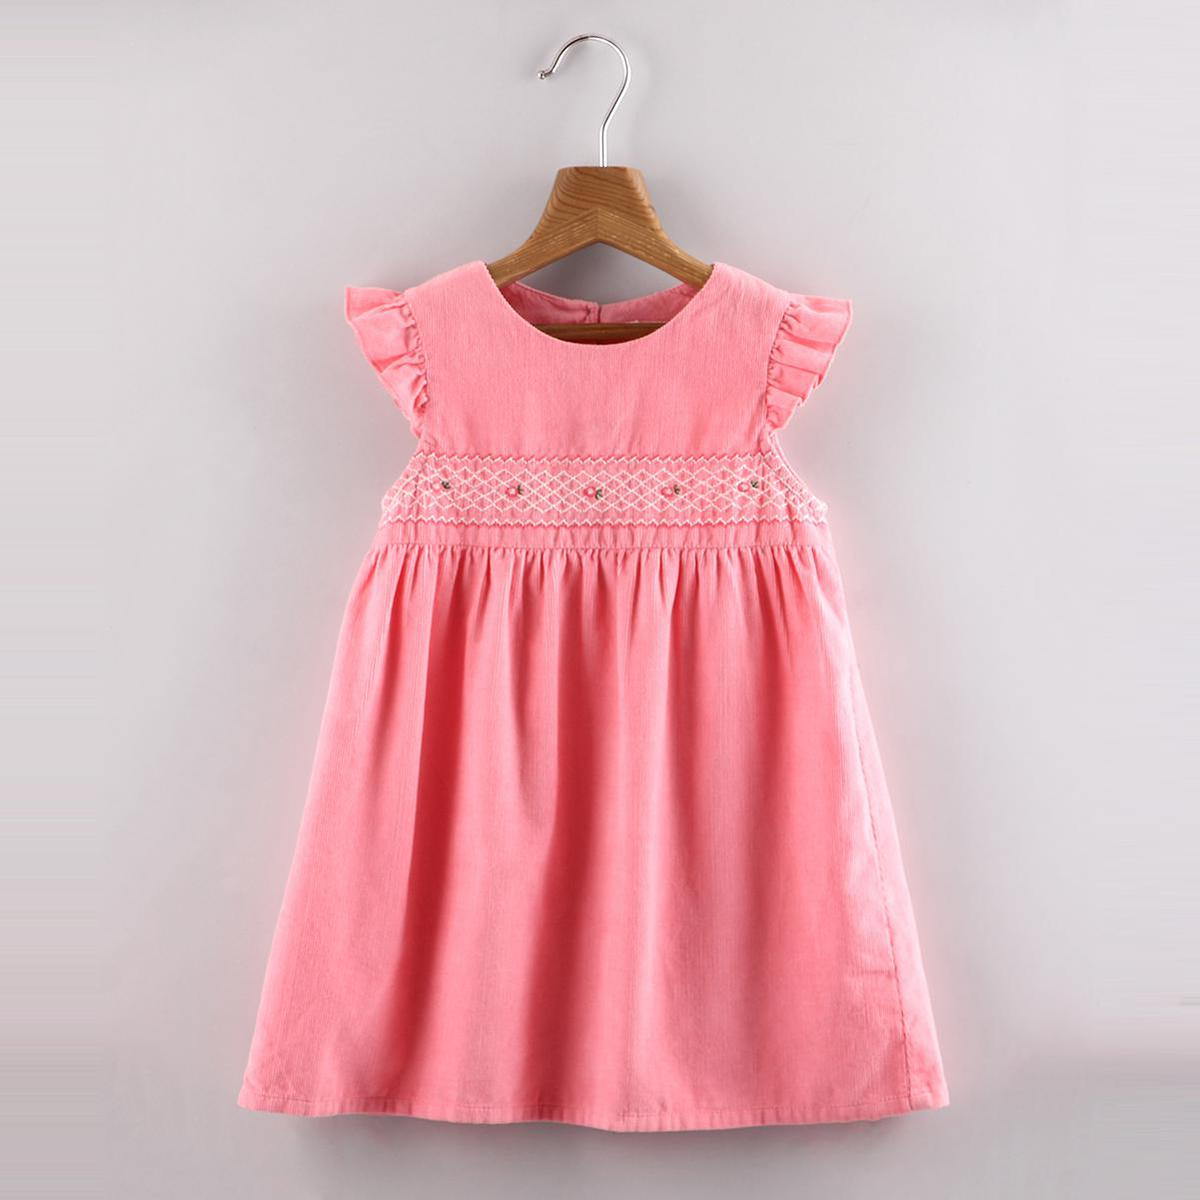 Beebay Blossom Corduroy Embroide(Red) Dress (Pink)